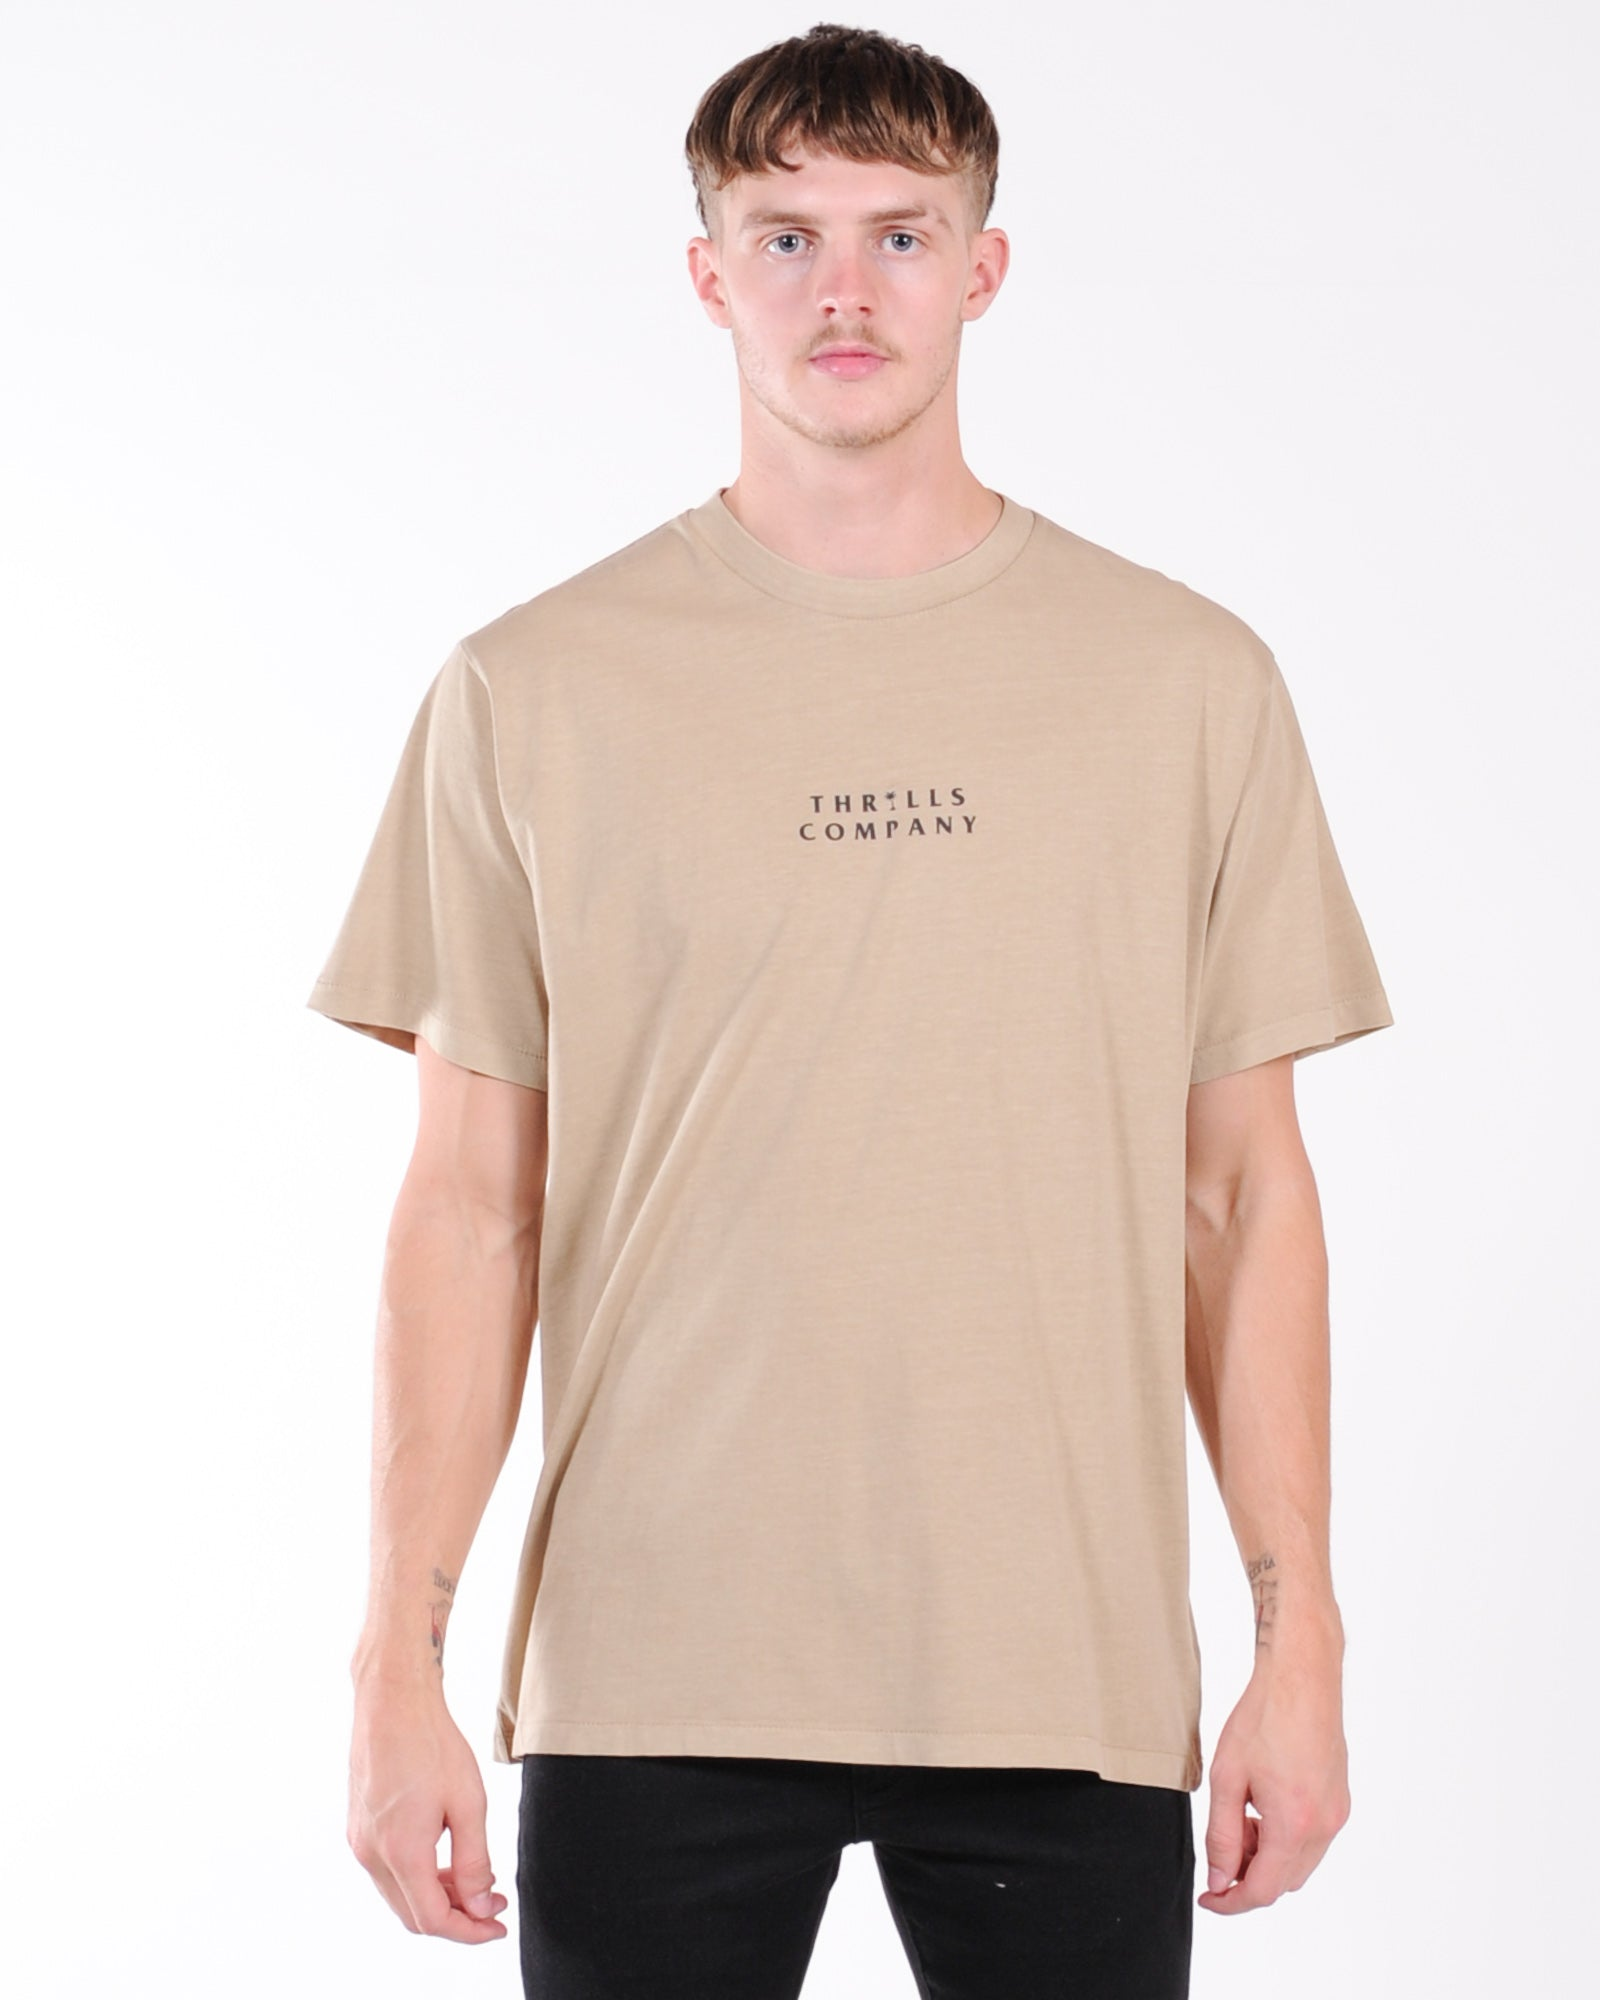 Thrills Palmed Thrills Company Merch Fit Tee - Washed Tan